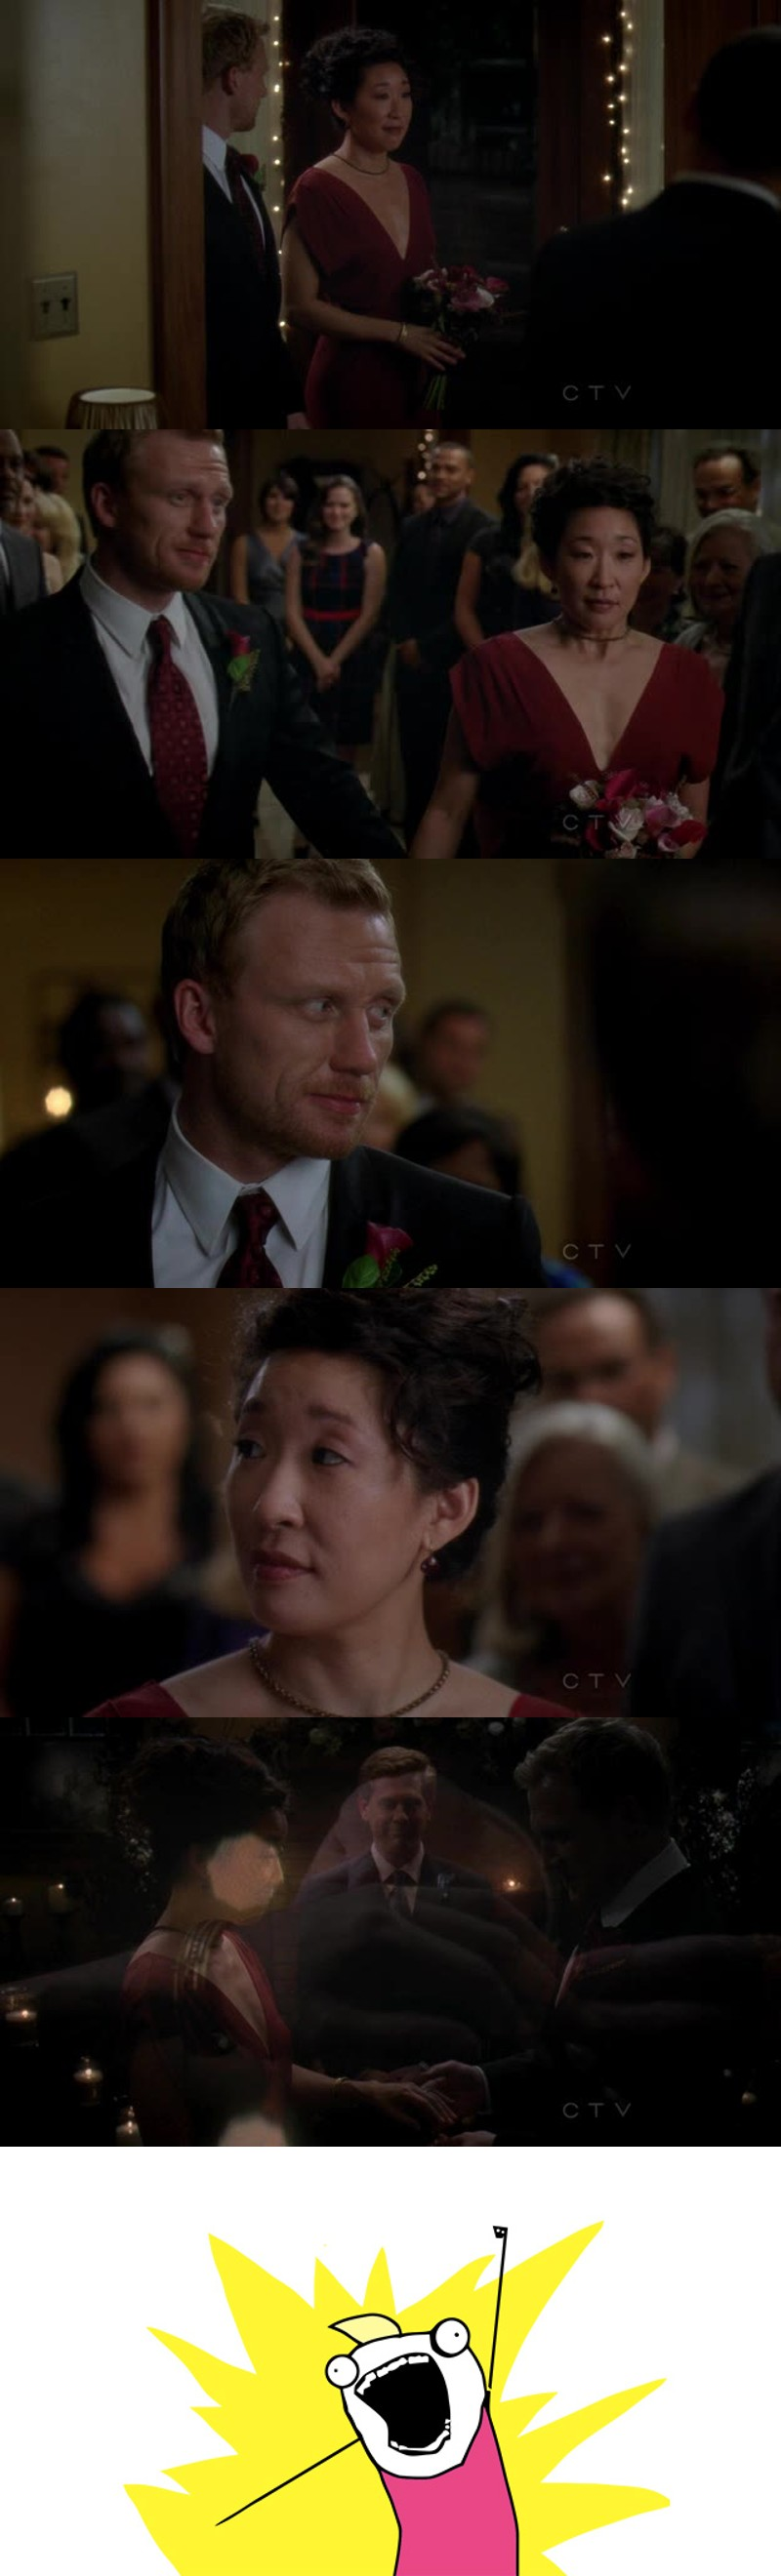 This is seriously my otp in the entire story of Grey's Anatomy, I ship them more than Meredith and Derek 😍